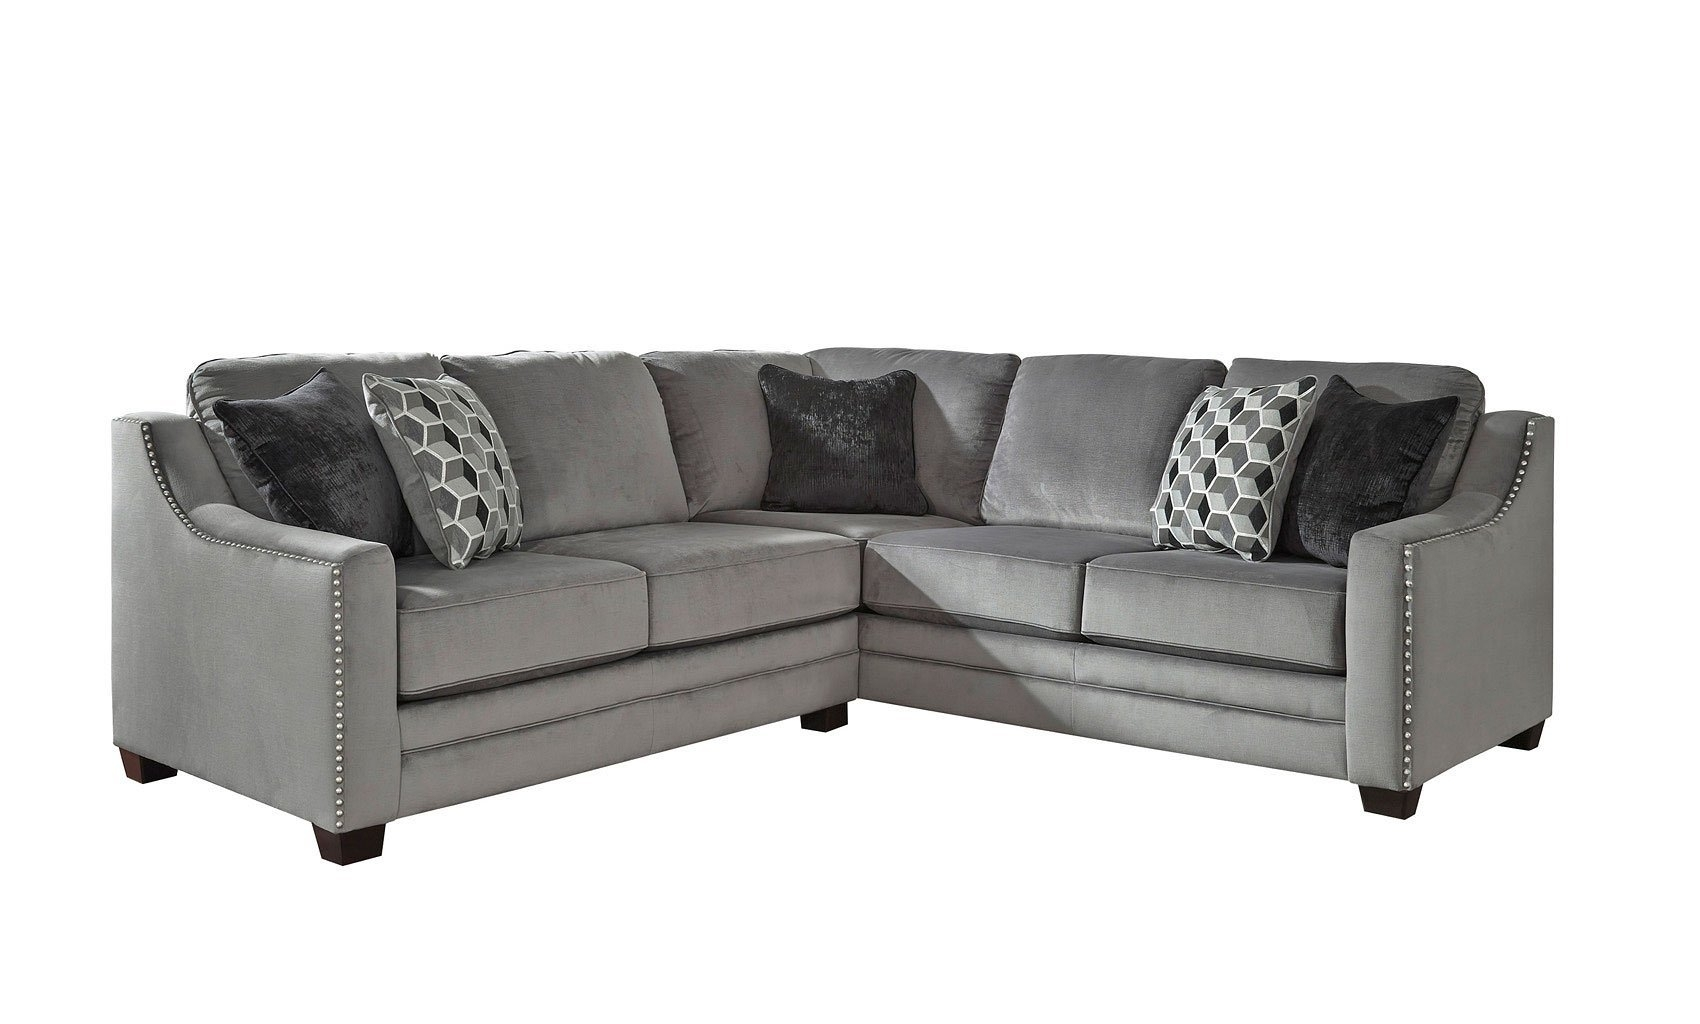 Loveseat Sectional | Whitecraftwoodard Mona Wicker Right Arm For Declan 3 Piece Power Reclining Sectionals With Left Facing Console Loveseat (Image 13 of 25)